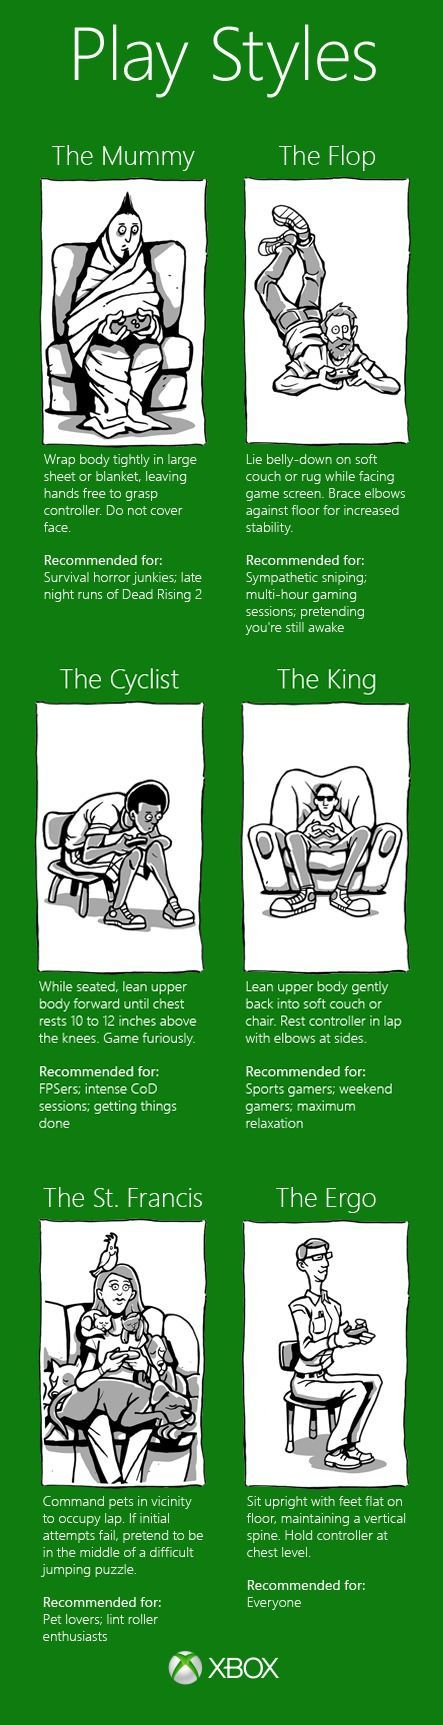 Yep it happened I became addicted to video games I usually sit like the king or the cyclist.